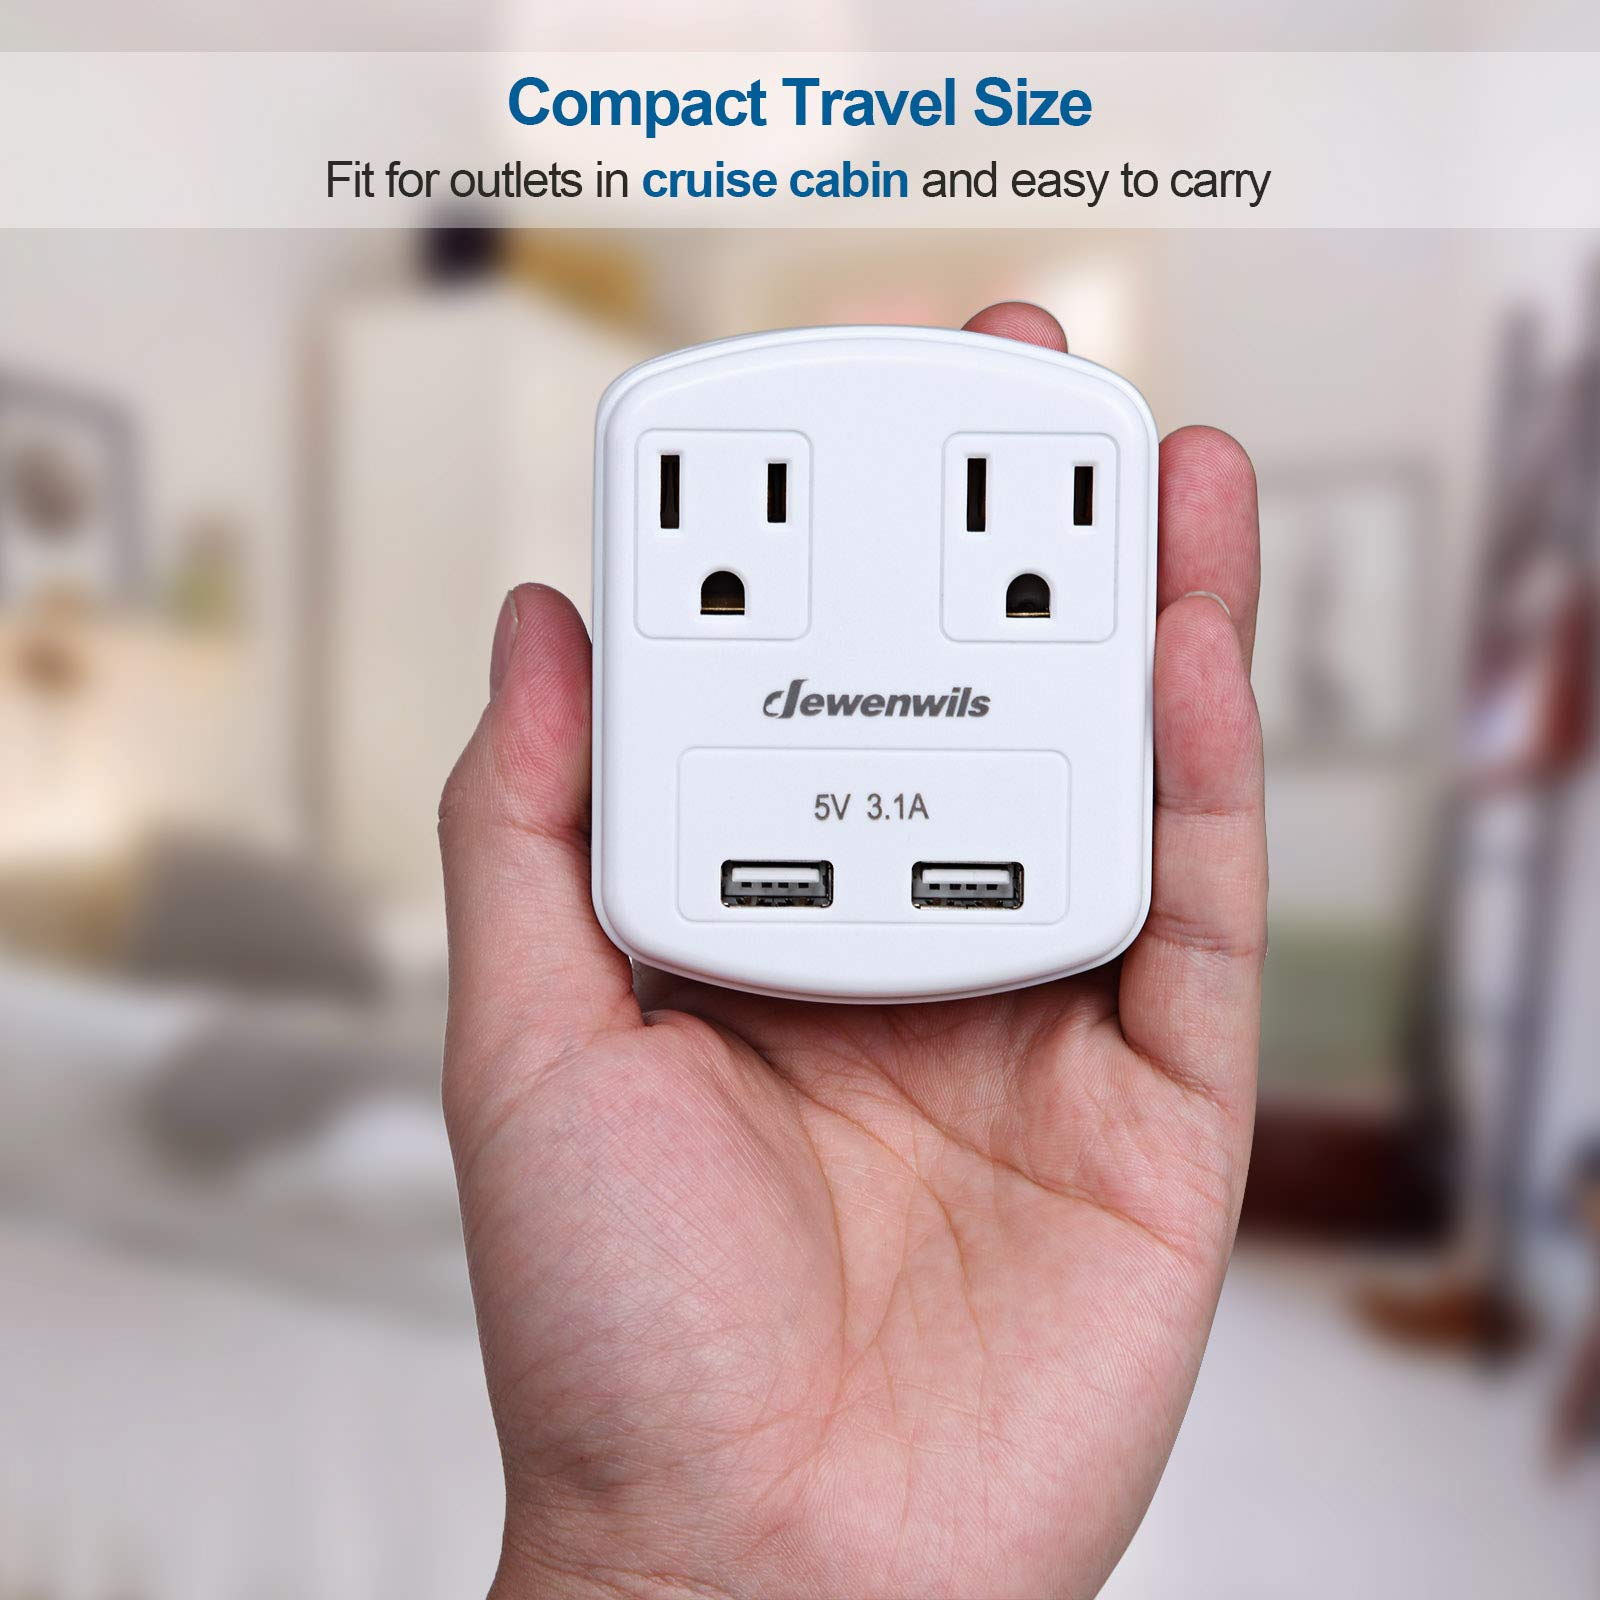 Dewenwils Multi Outlet Plug with 2 USB Ports (3.1A Total), Small Power Strip USB Charger for Cruise Ship/Hotel / Dormitory, Compatible with GFCI, ETL Listed, White by DEWENWILS (Image #3)